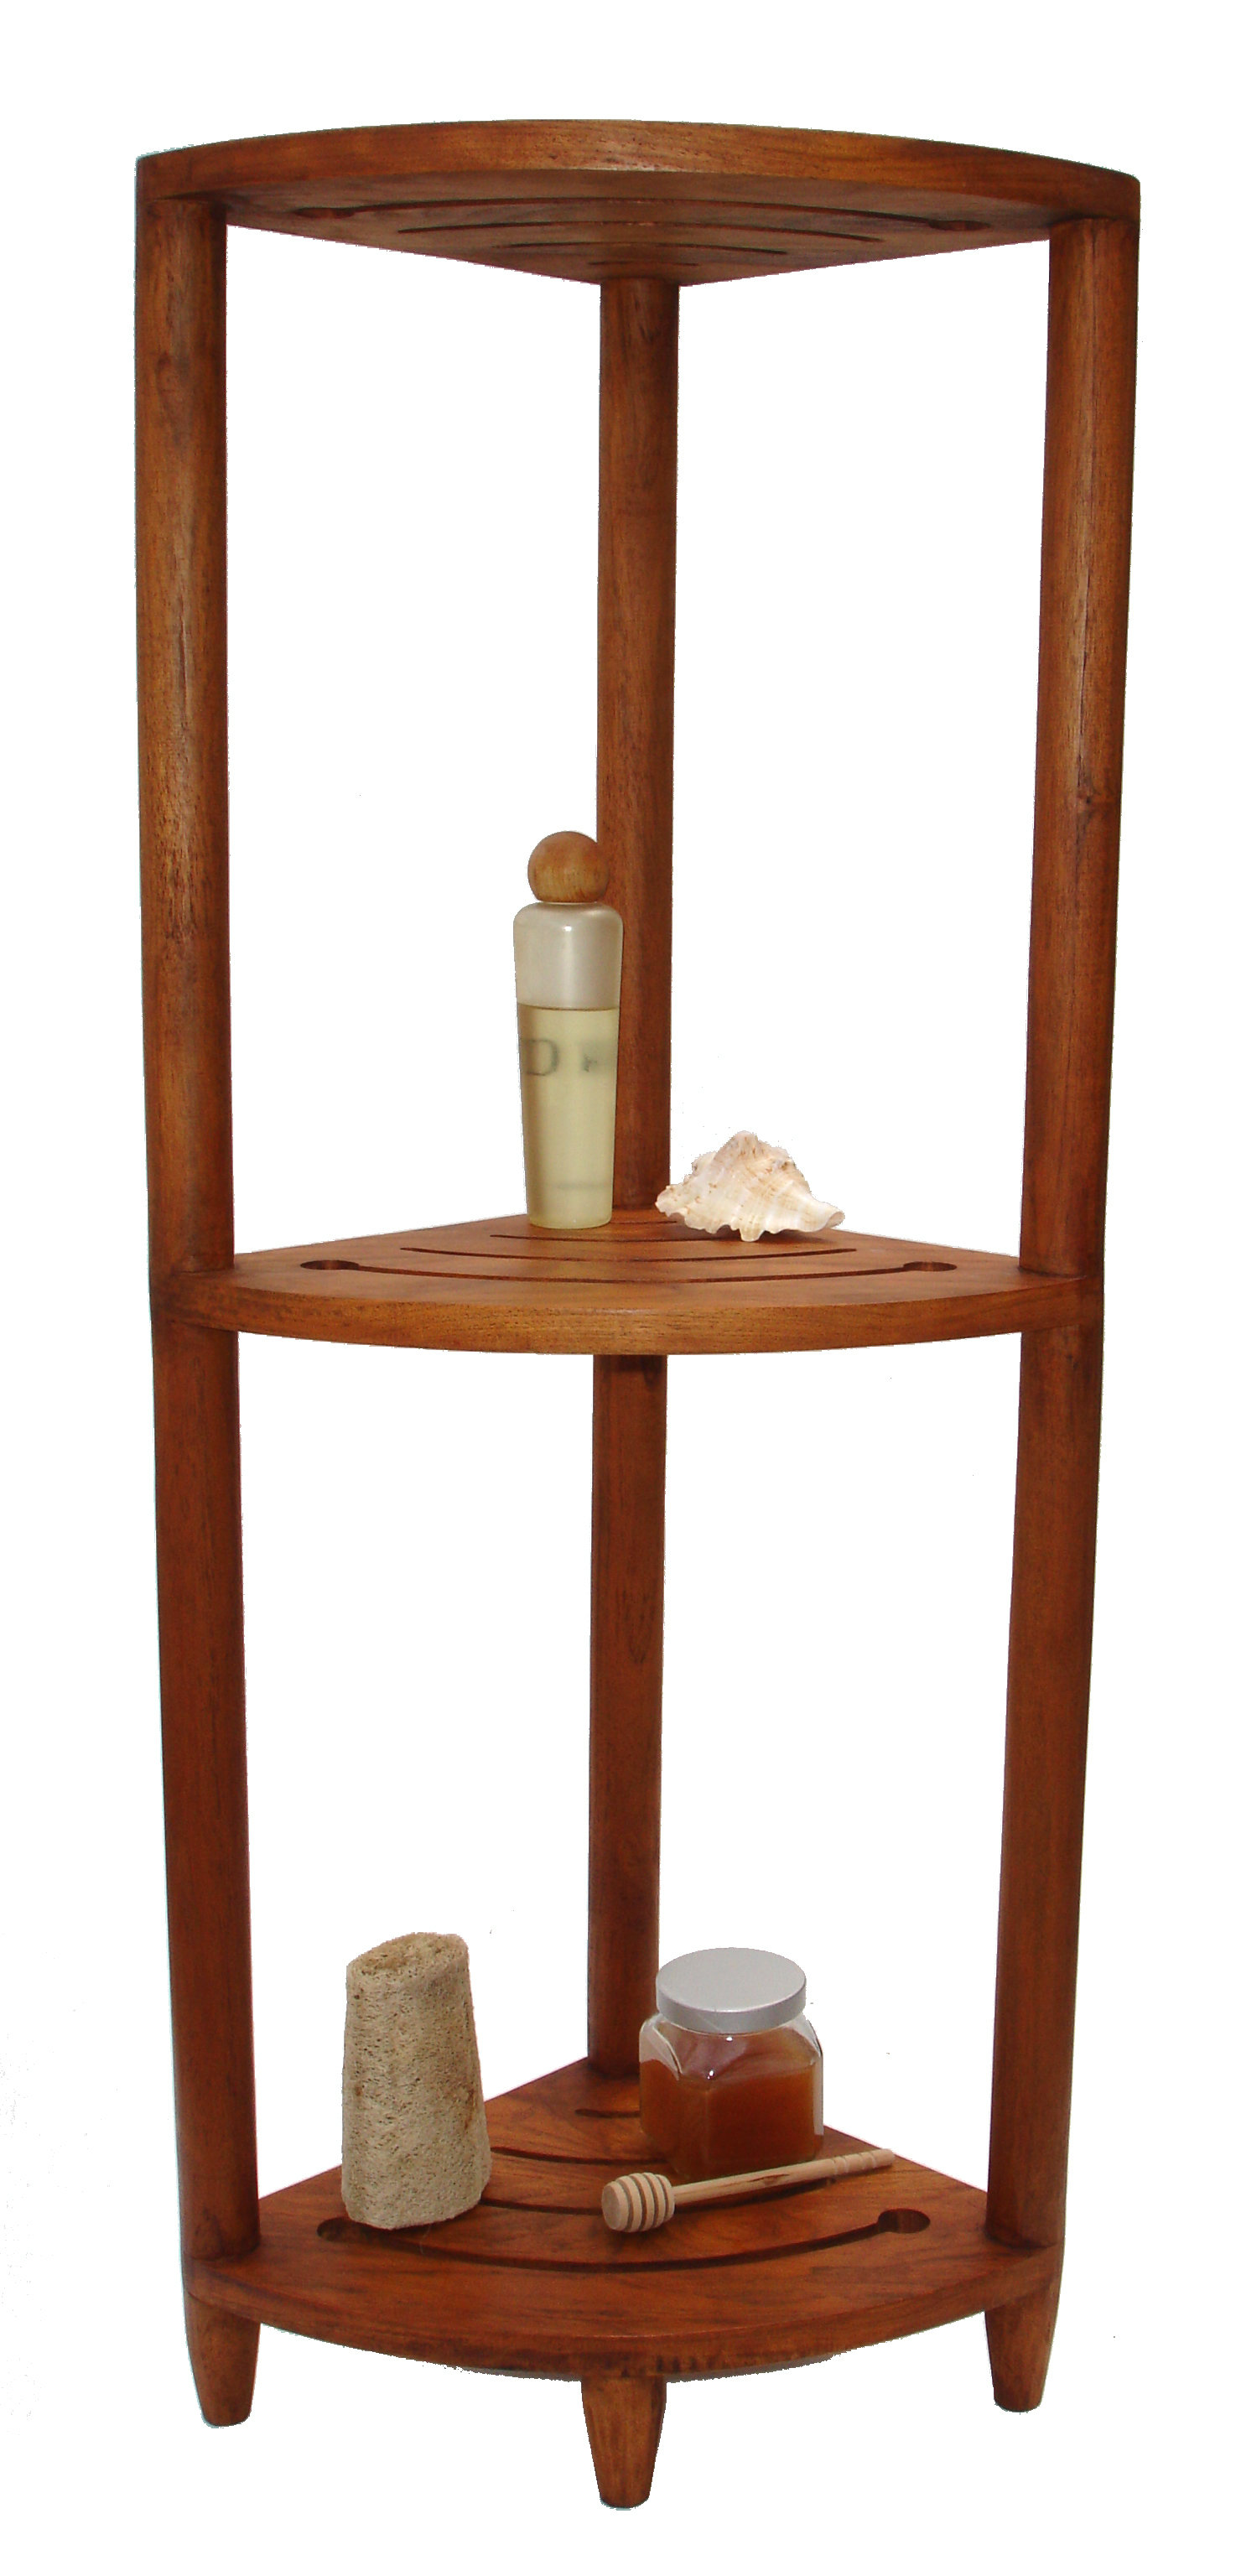 teak corner shower bench caddy round accent table good fruity drinks tall white bookshelf base silver living room accessories coffee with wheels bath and beyond area rugs